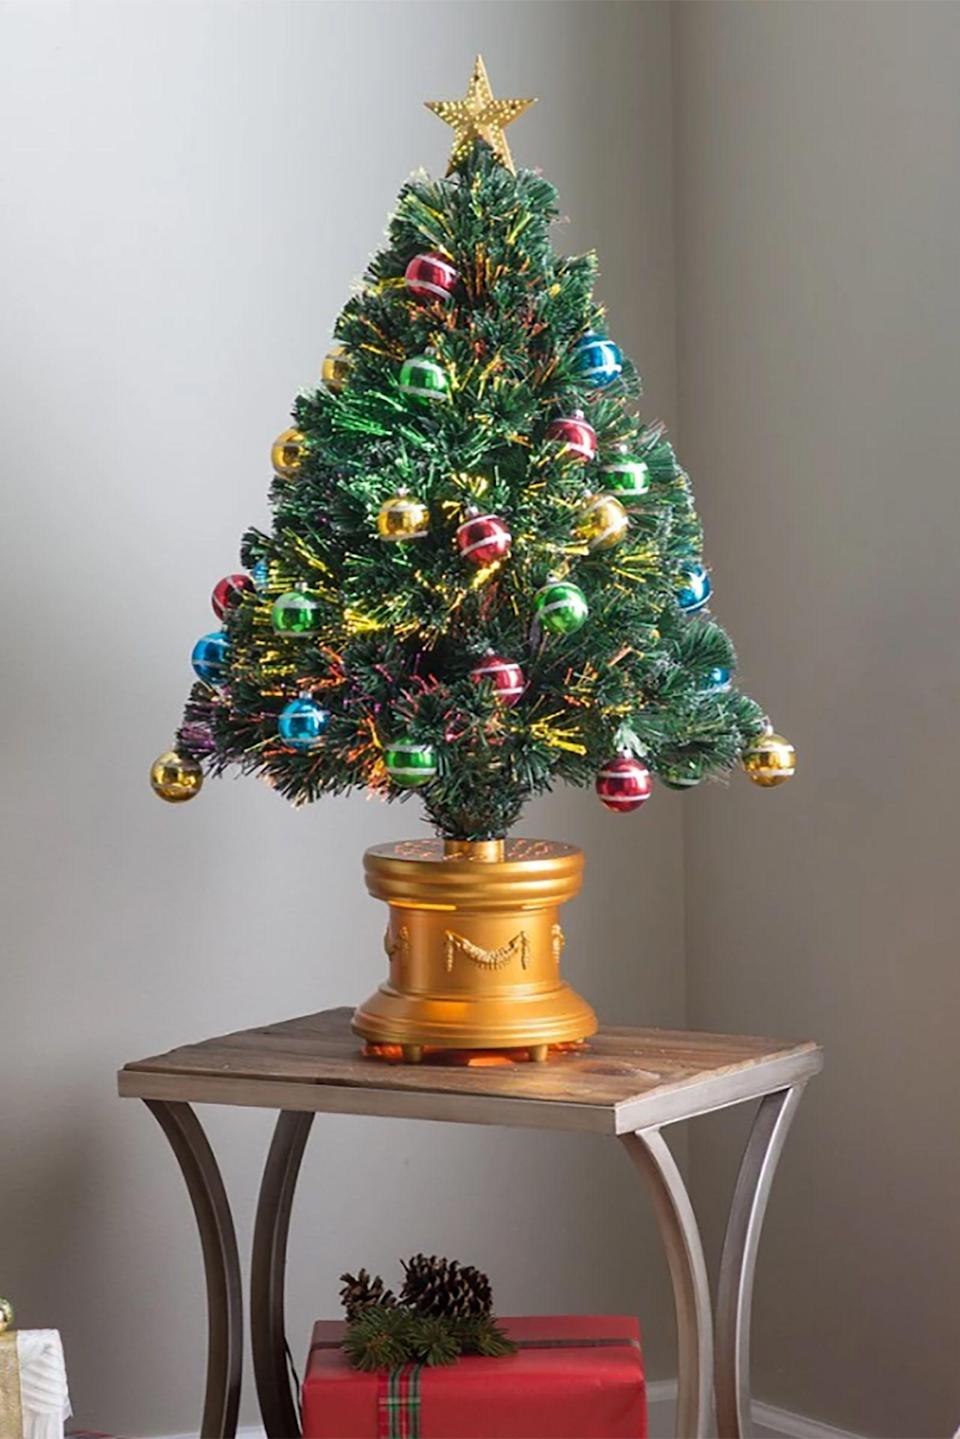 """<p><strong>National Tree Company</strong></p><p>homedepot.com</p><p><strong>$90.63</strong></p><p><a href=""""https://go.redirectingat.com?id=74968X1596630&url=http%3A%2F%2Fwww.homedepot.com%2Fp%2FNational-Tree-Company-36-in-Fiber-Optic-Fireworks-Tree-with-Ball-Ornaments-SZOX7-100L-36-1%2F300496224&sref=https%3A%2F%2Fwww.countryliving.com%2Fhome-design%2Fdecorating-ideas%2Fg5027%2Fbest-artificial-christmas-trees%2F"""" rel=""""nofollow noopener"""" target=""""_blank"""" data-ylk=""""slk:Shop Now"""" class=""""link rapid-noclick-resp"""">Shop Now</a></p><p>This dazzling tabletop piece is already outfitted with ornaments, meaning less time decorating and more time enjoying <a href=""""https://www.countryliving.com/food-drinks/g647/holiday-cookies-1208/"""" rel=""""nofollow noopener"""" target=""""_blank"""" data-ylk=""""slk:Christmas cookies"""" class=""""link rapid-noclick-resp"""">Christmas cookies</a>.</p>"""